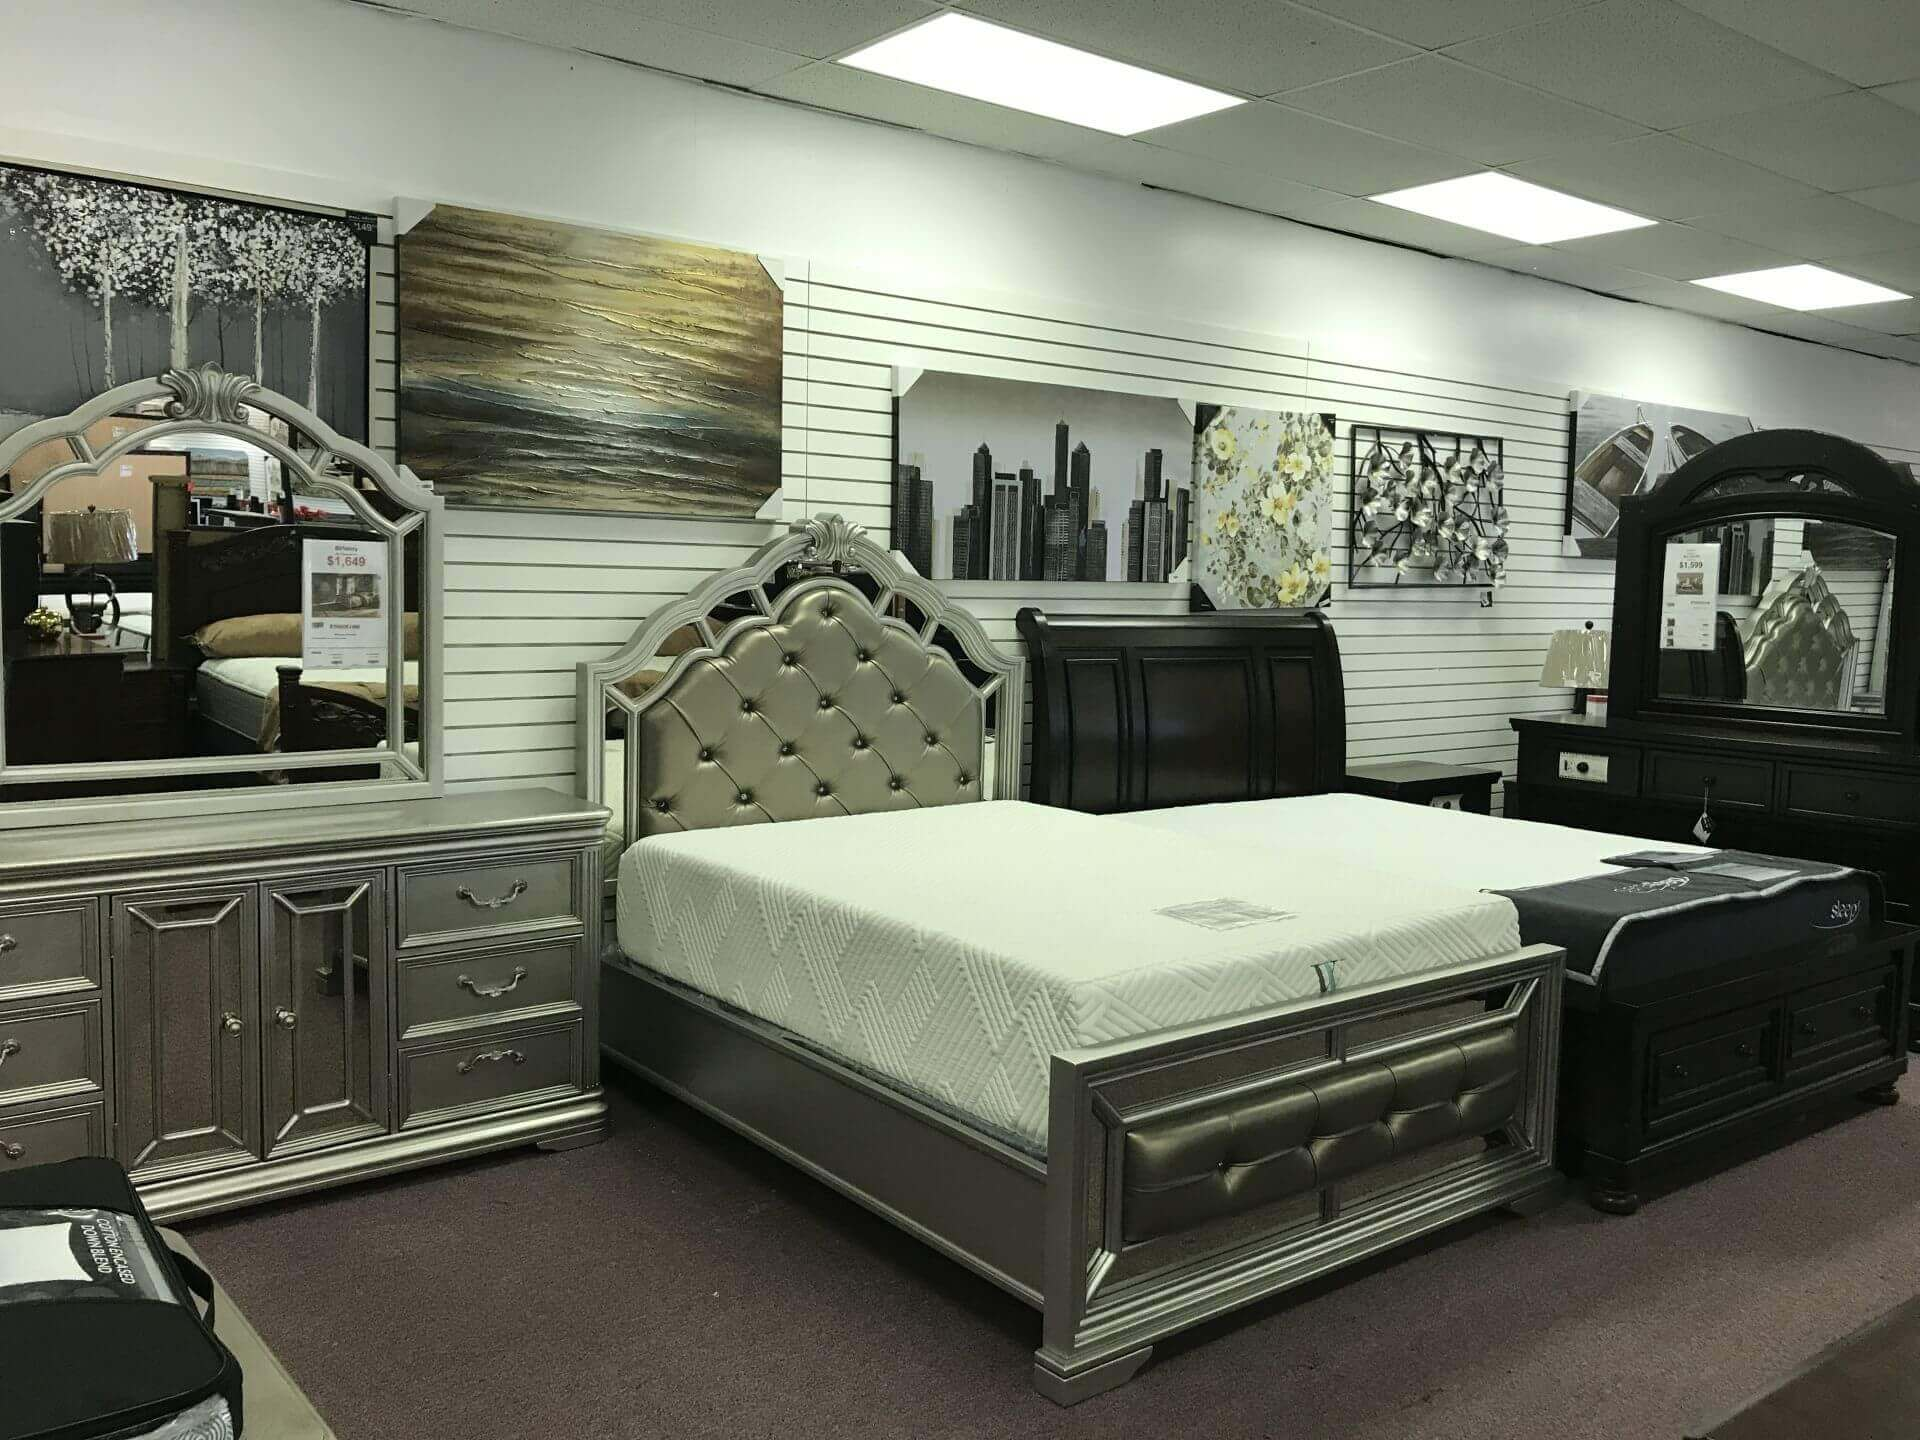 Home Furniture and More Showroom Interior